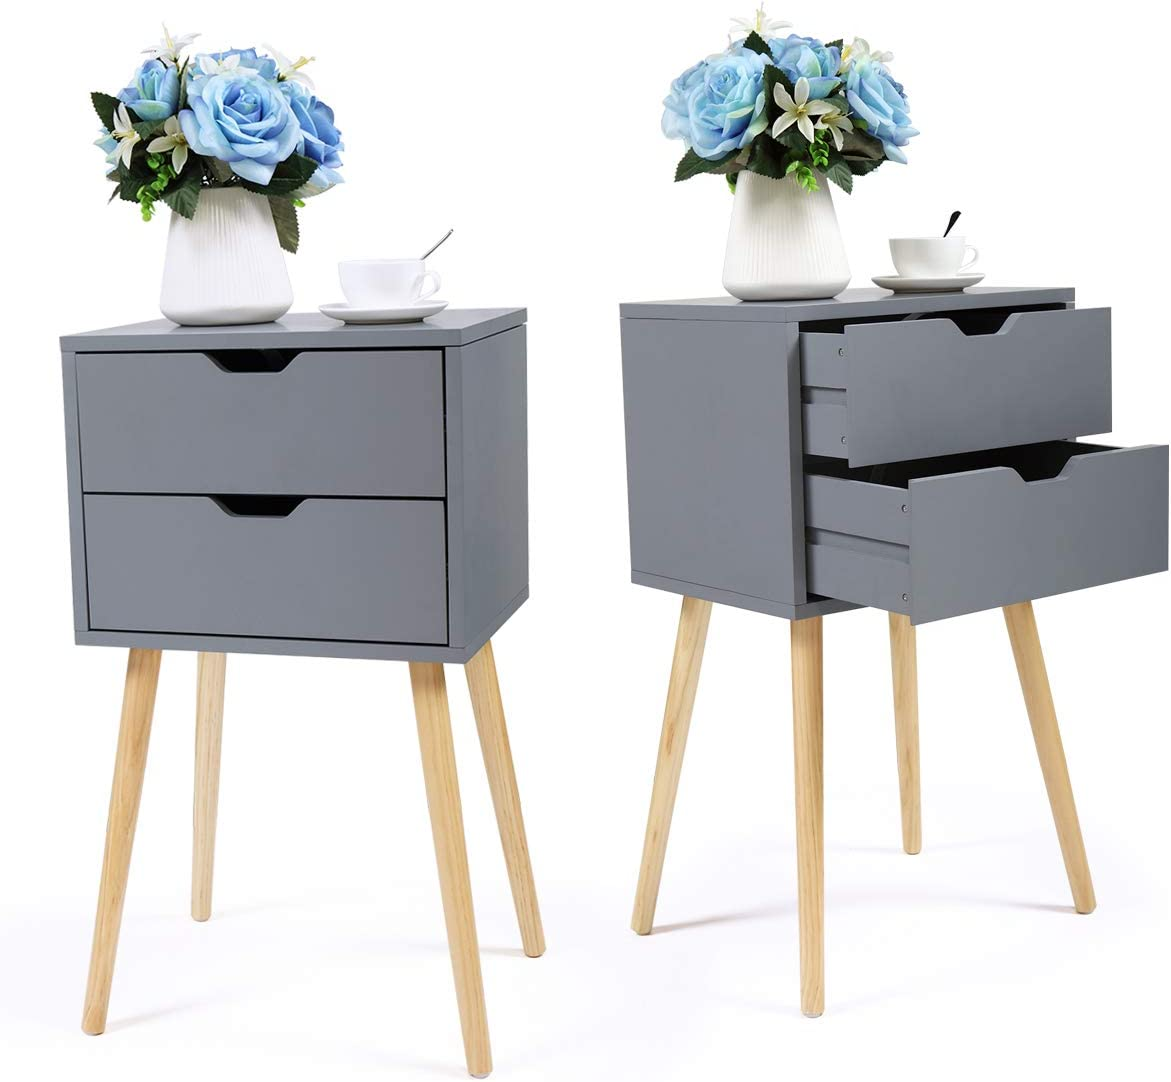 JAXPETY Set of 2 Nightstand 2 Drawers End Table Storage Wood Cabinet Bedroom Accent Side Table Gray